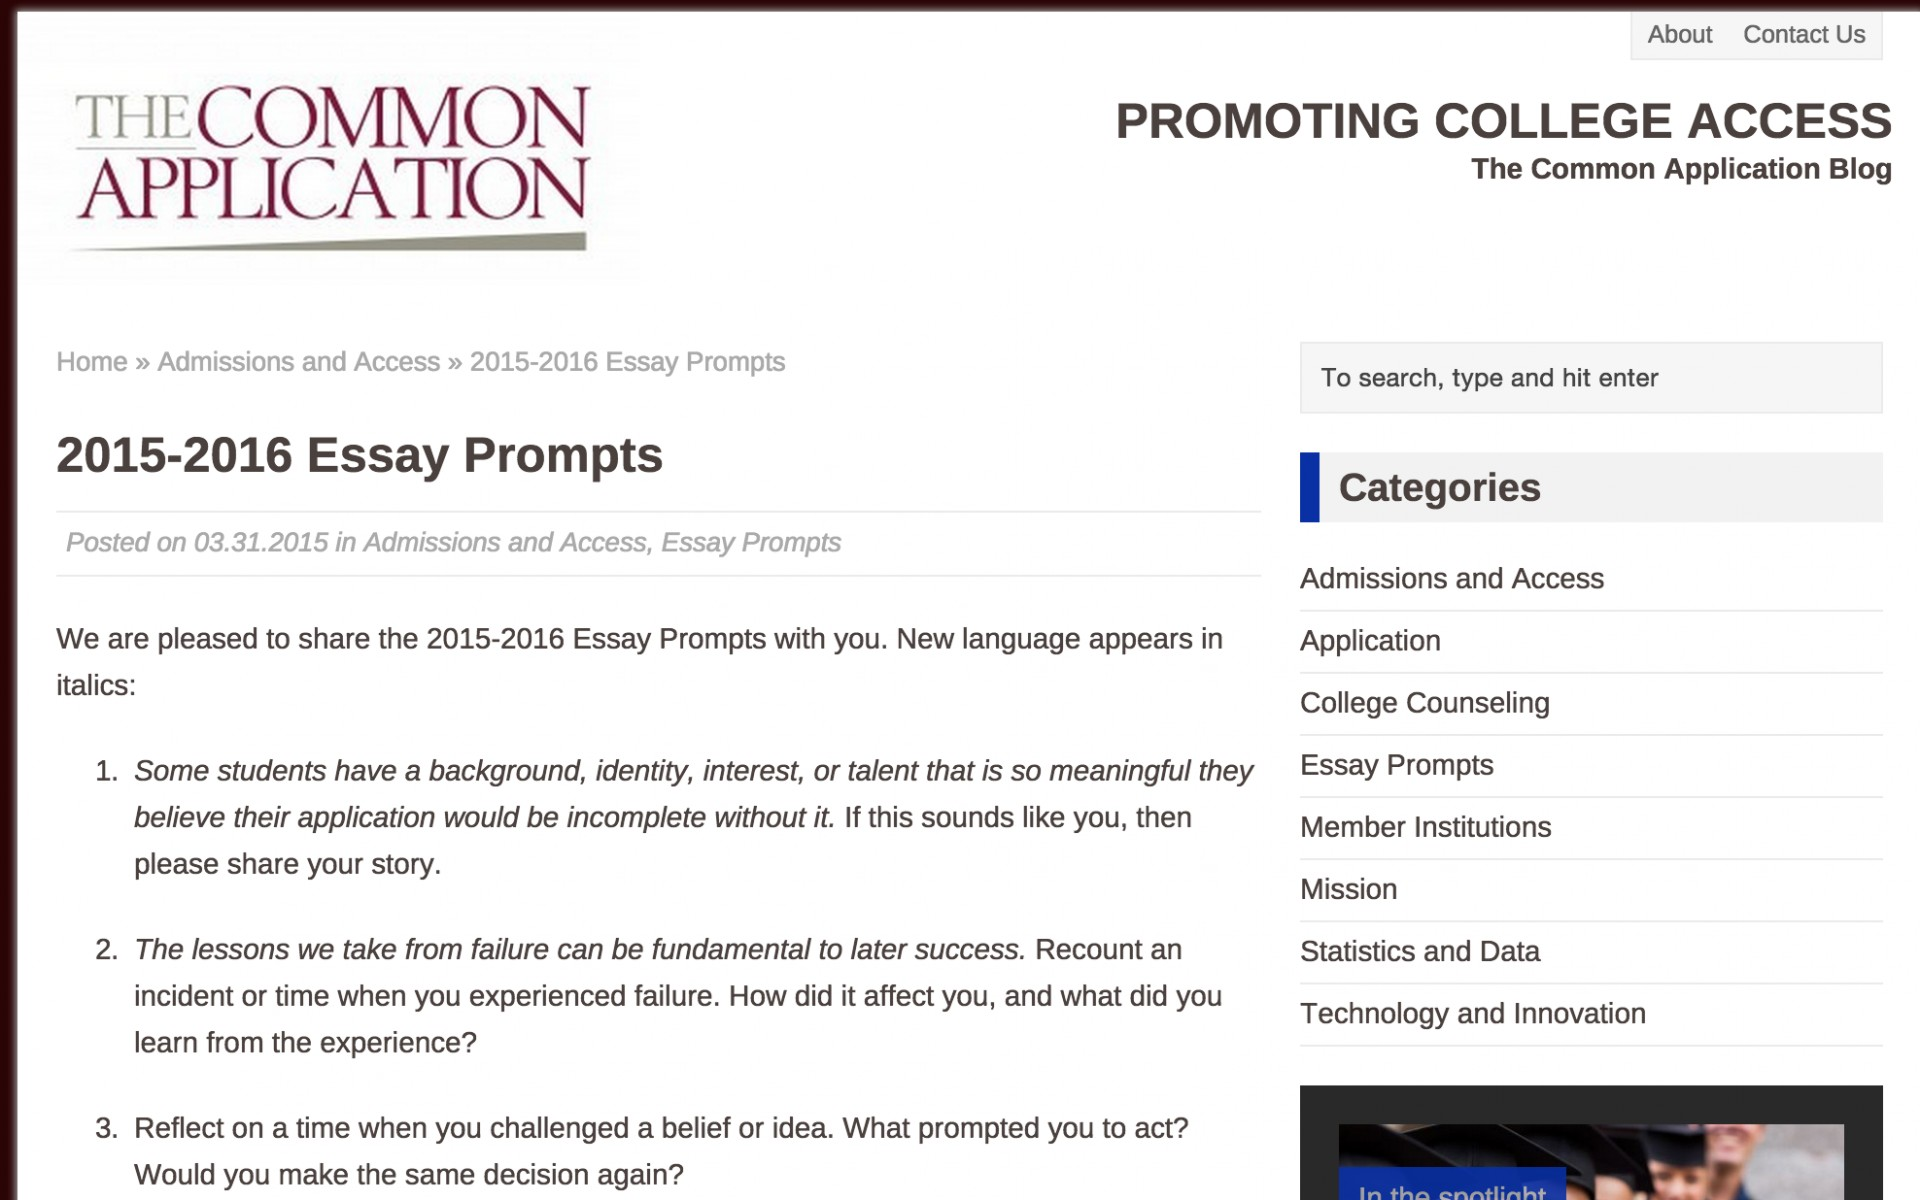 002 Essay Example Screen Shot At Pm Common App Unusual Prompt Examples 6 1 Sample 1920